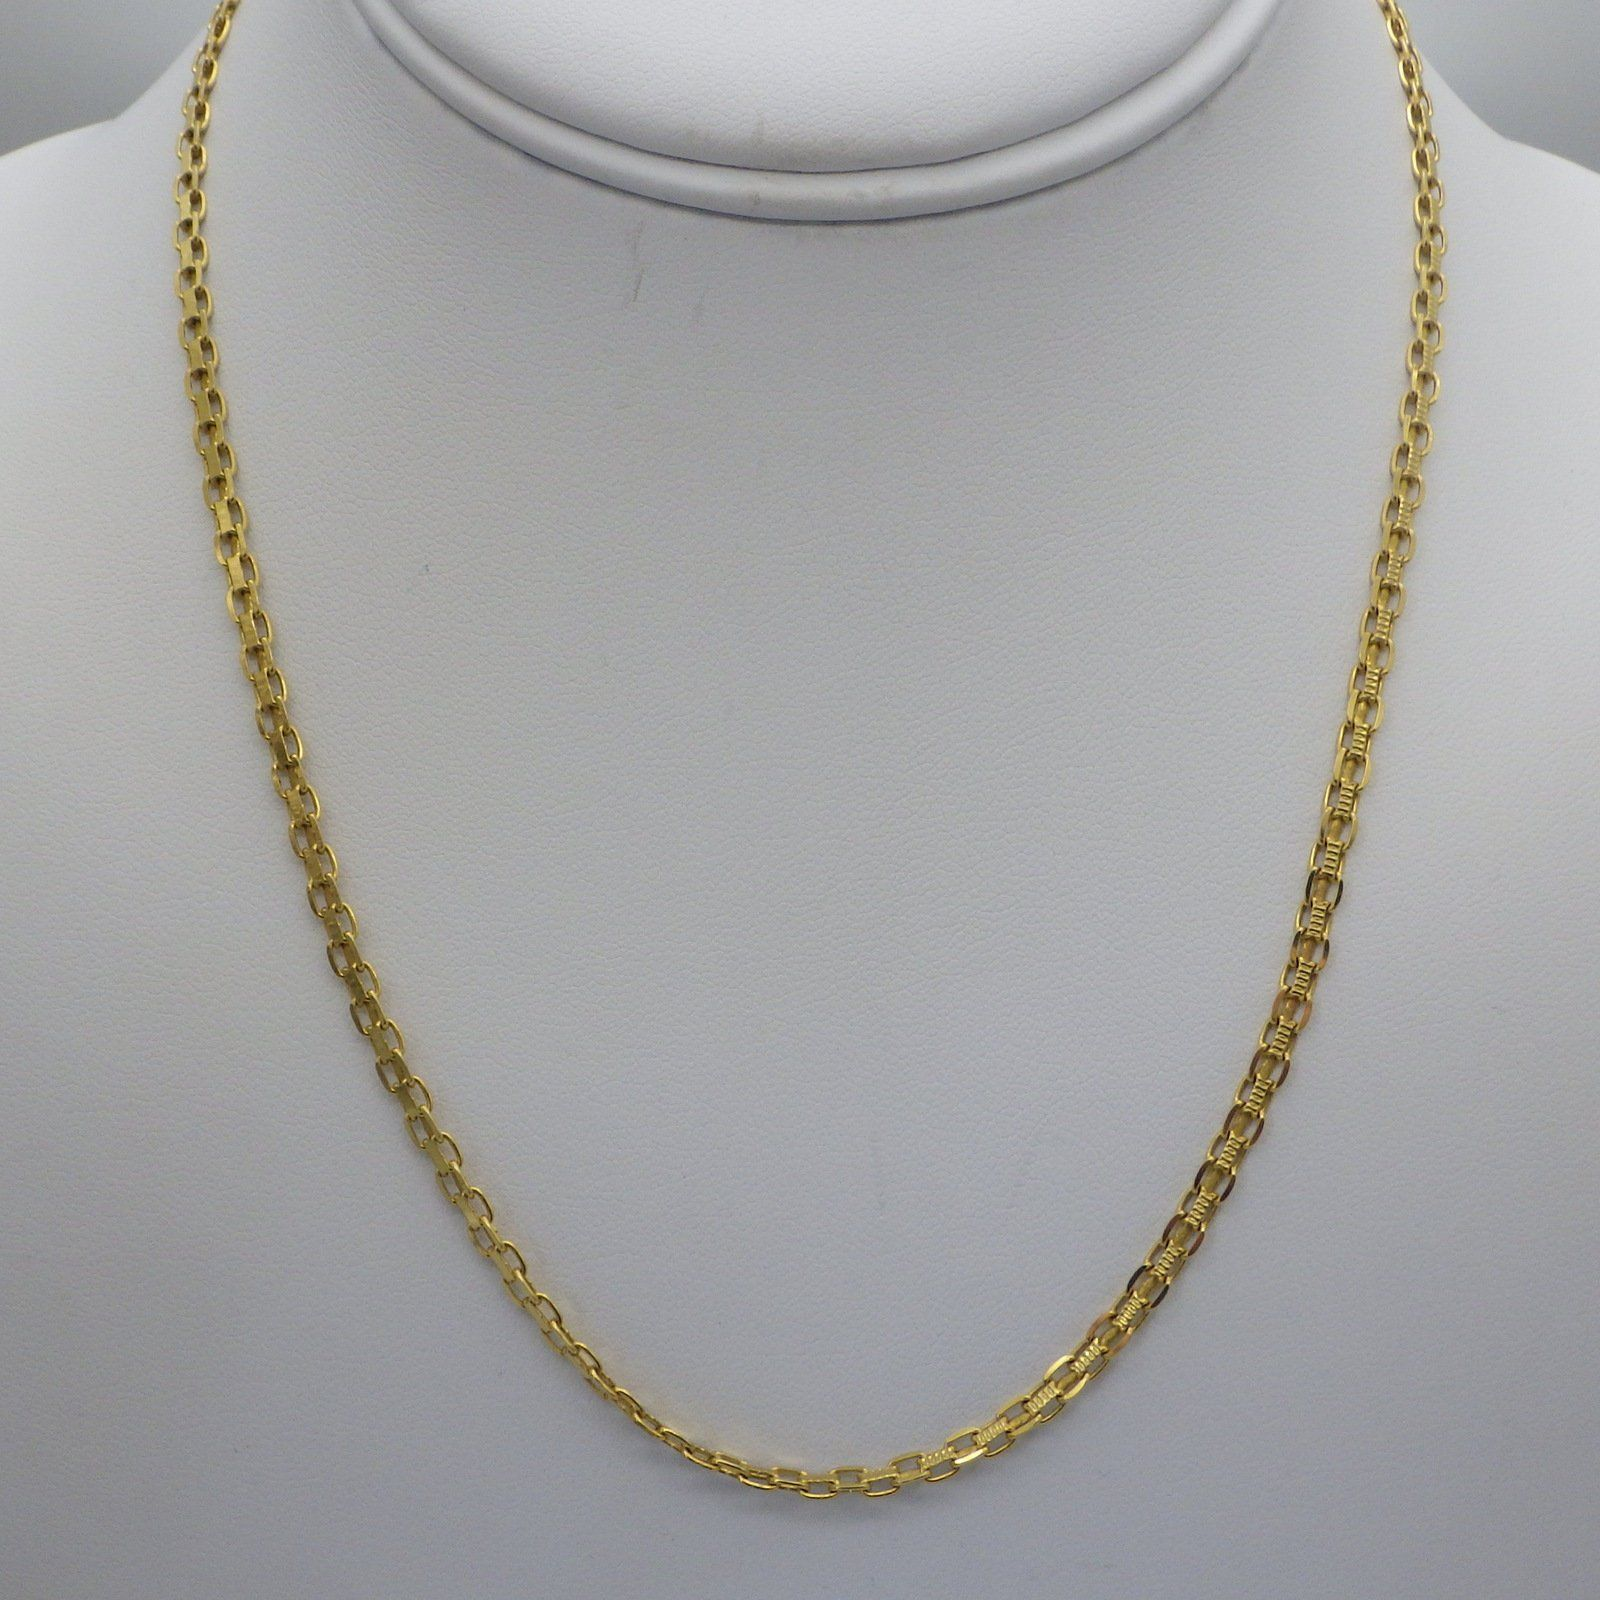 Vintage k gold necklace chain specialty chain yellow gold